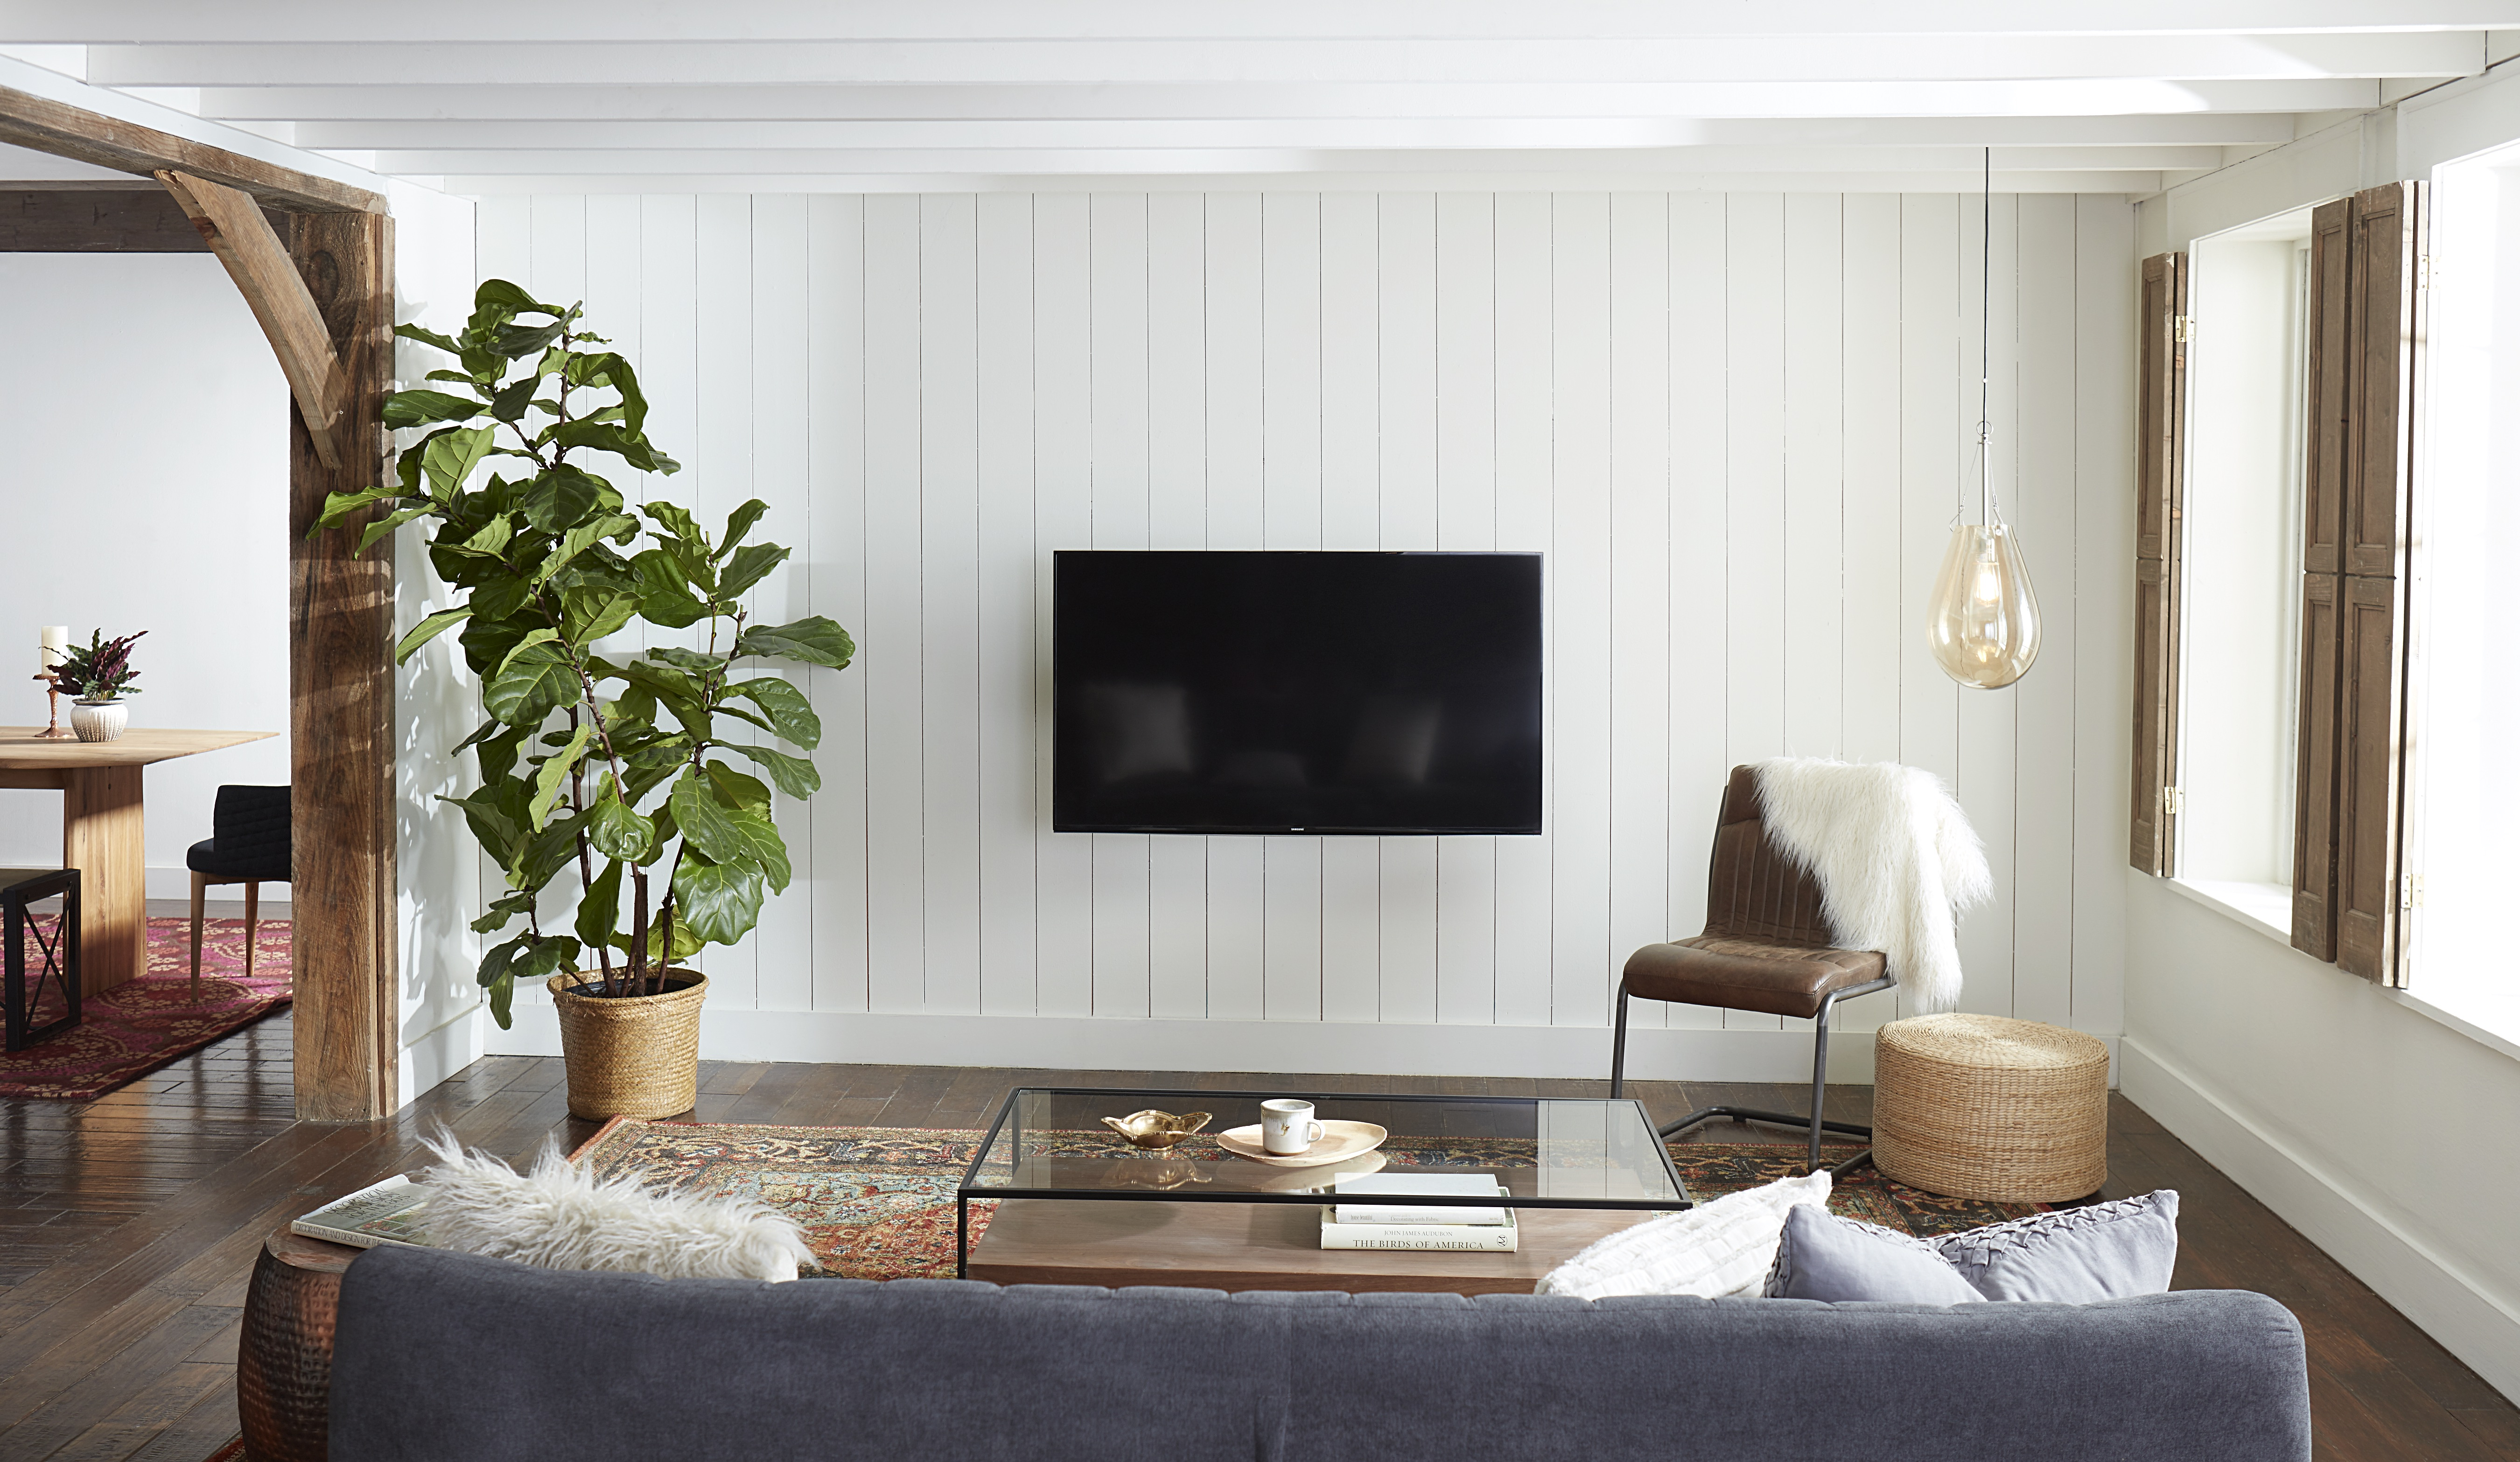 TV Mounting Height: Where to Put Your TV on the Wall [VIDEO]